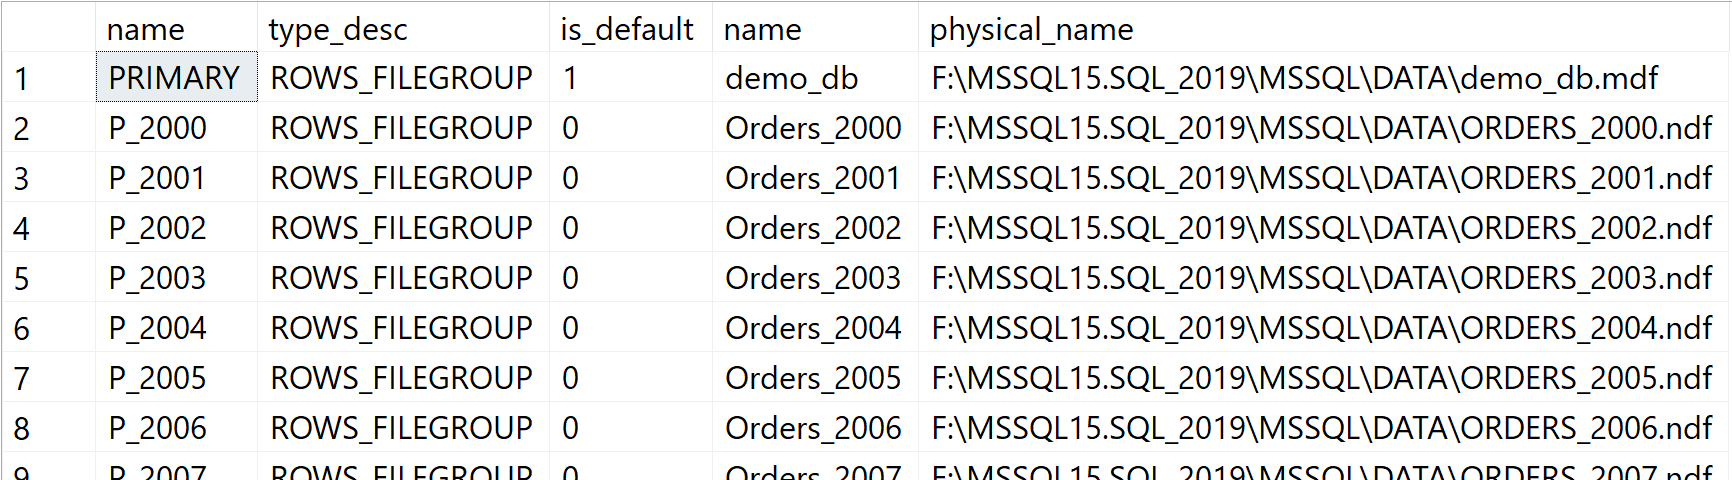 word image 26 Heaps in SQL Server: Part 2 Optimizing Reads